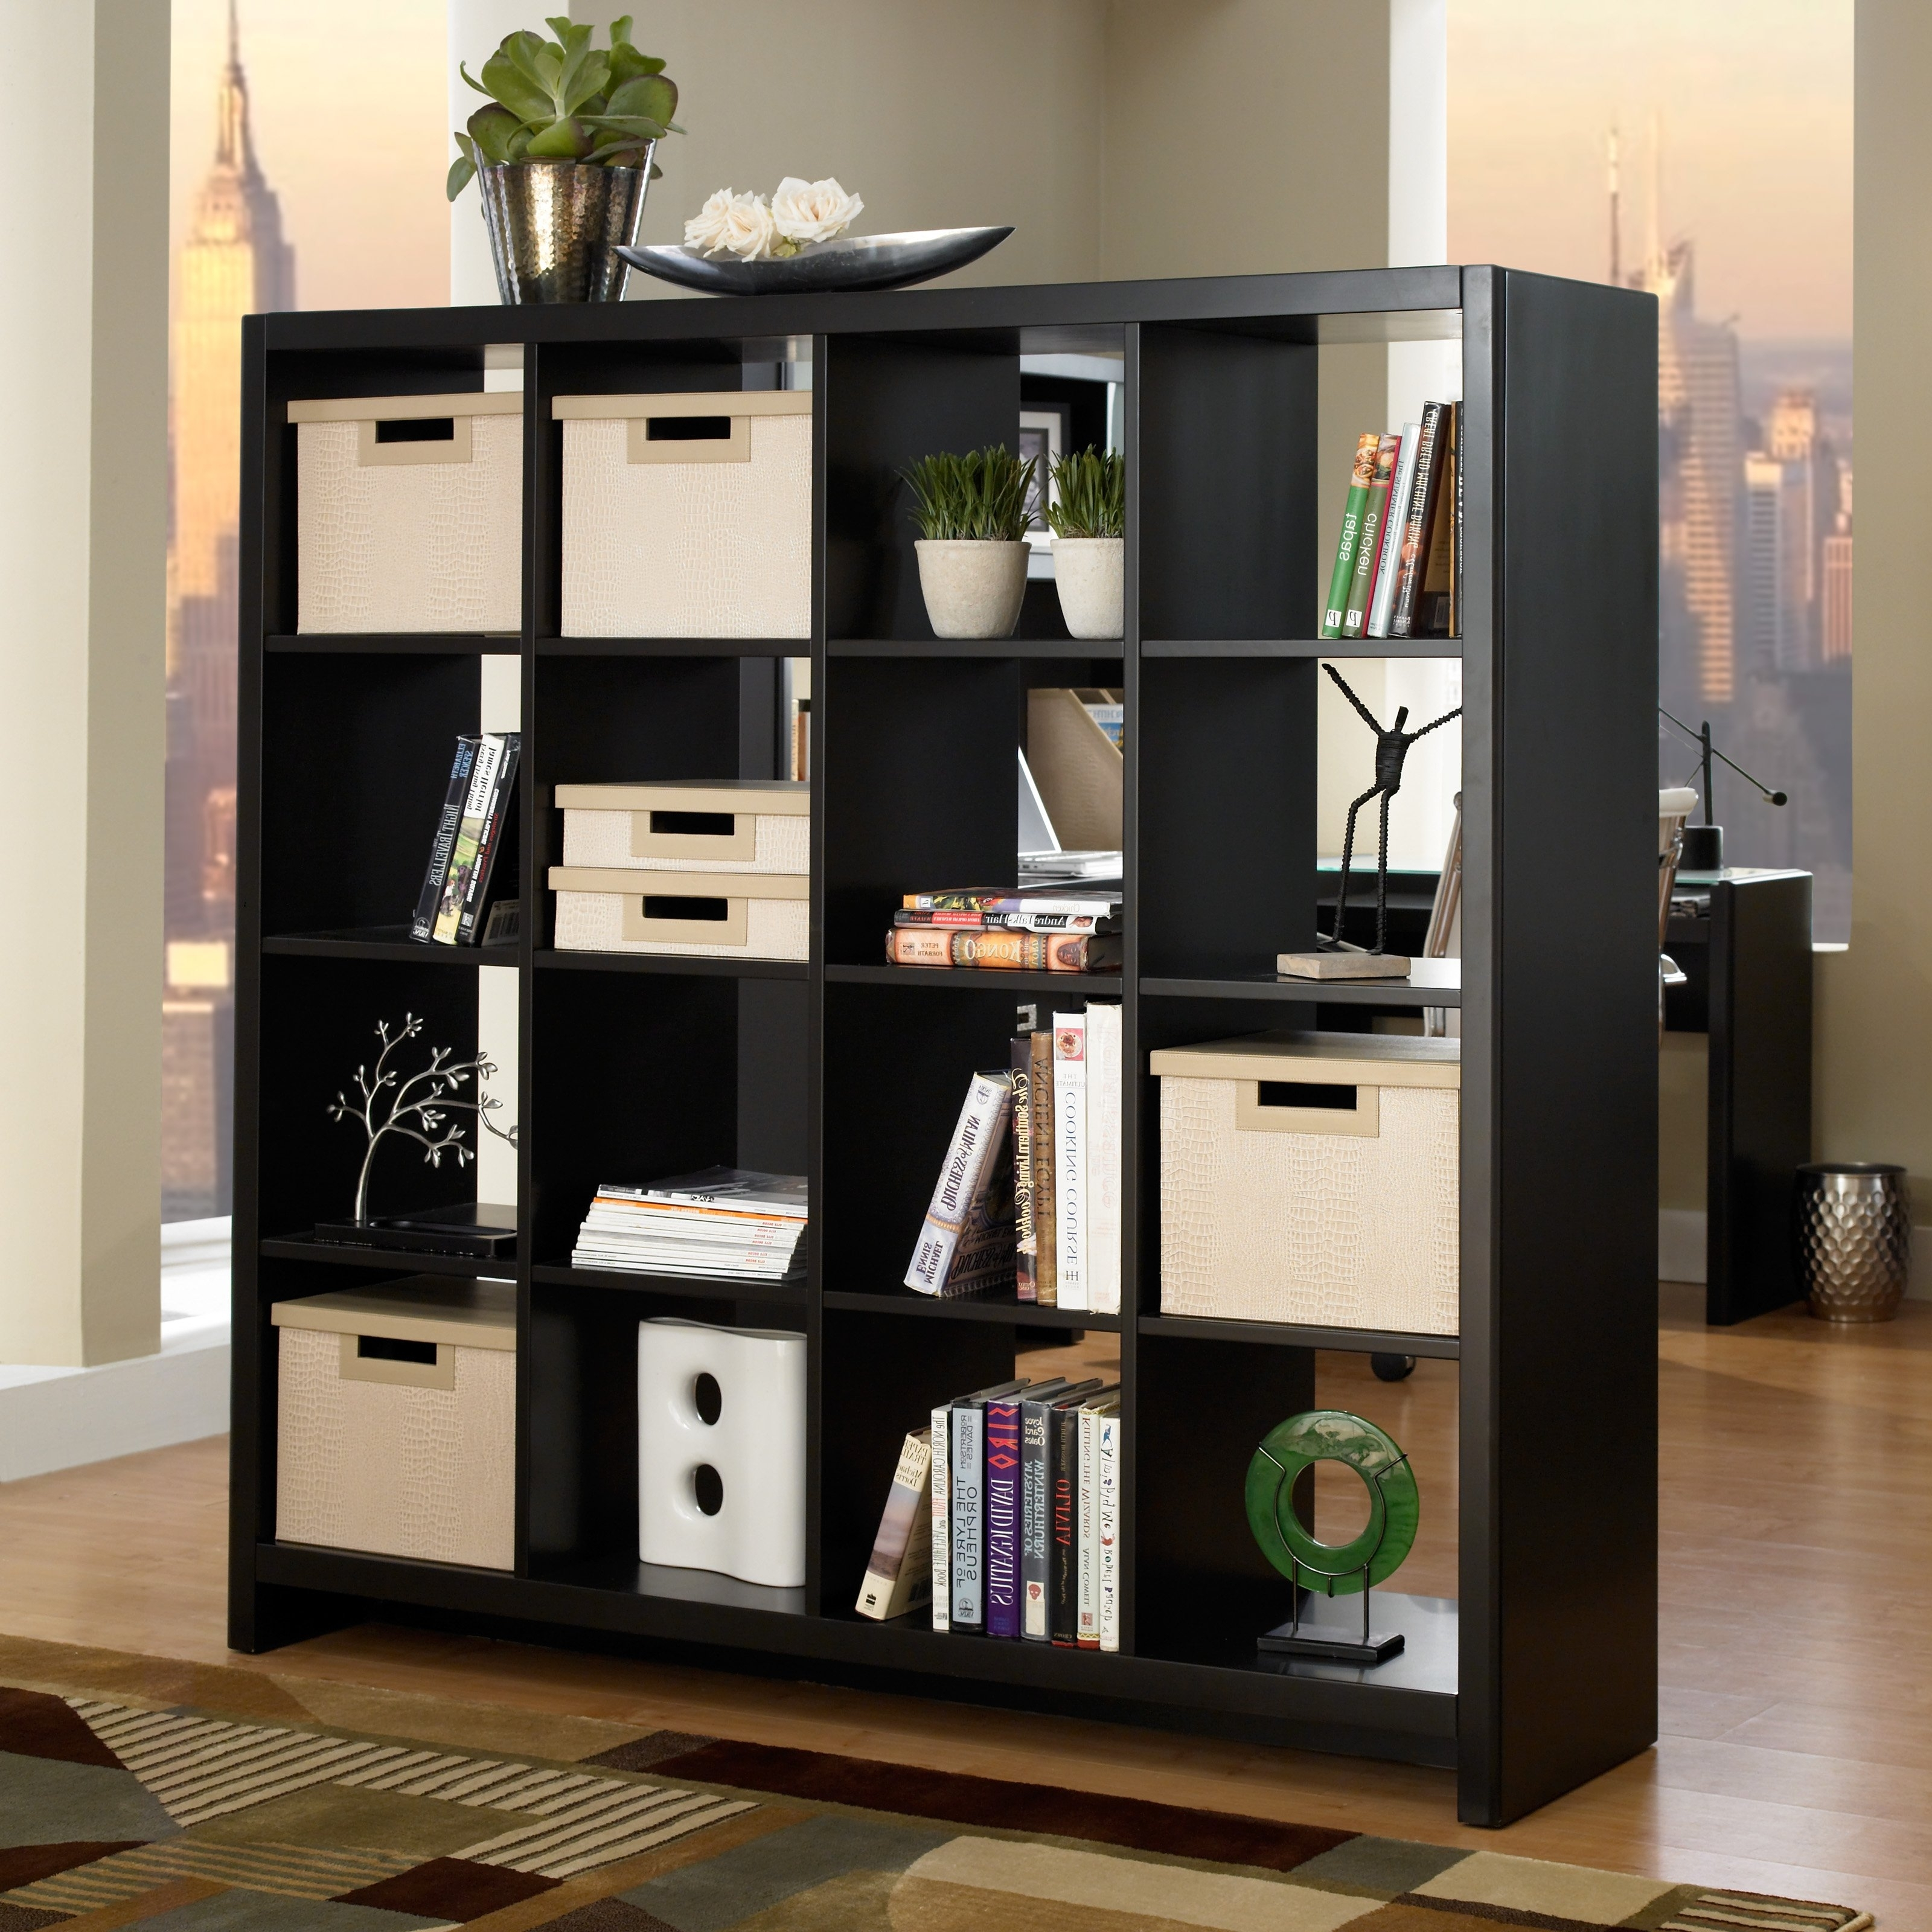 Tall Black Wooden Bookcase With Cubices Shelves Addedcontainer For Popular Bookcases Room Divider (View 13 of 15)